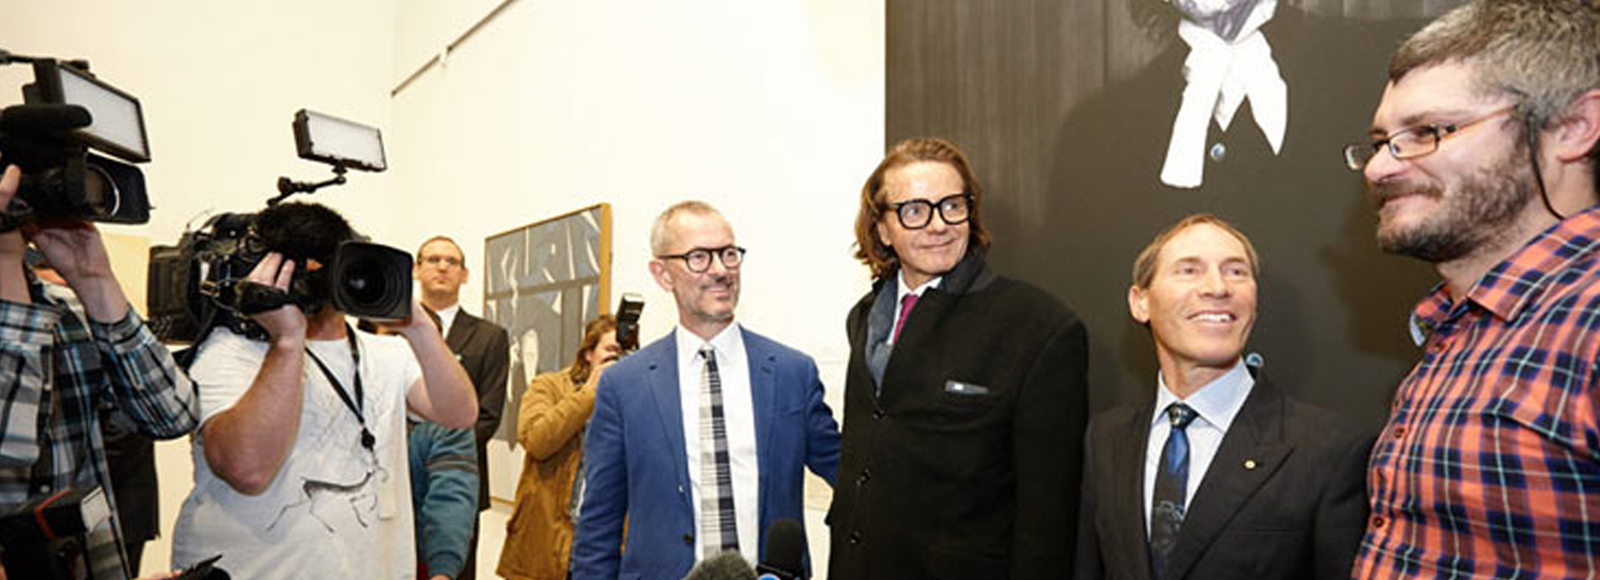 Archibald Prize 2015 winner announcement. Left to right: Art Gallery of NSW director Michael Brand, portrait subject Charles Waterstreet, president of the board of trustees Guido Belgiorno-Nettis and artist Nigel Milsom